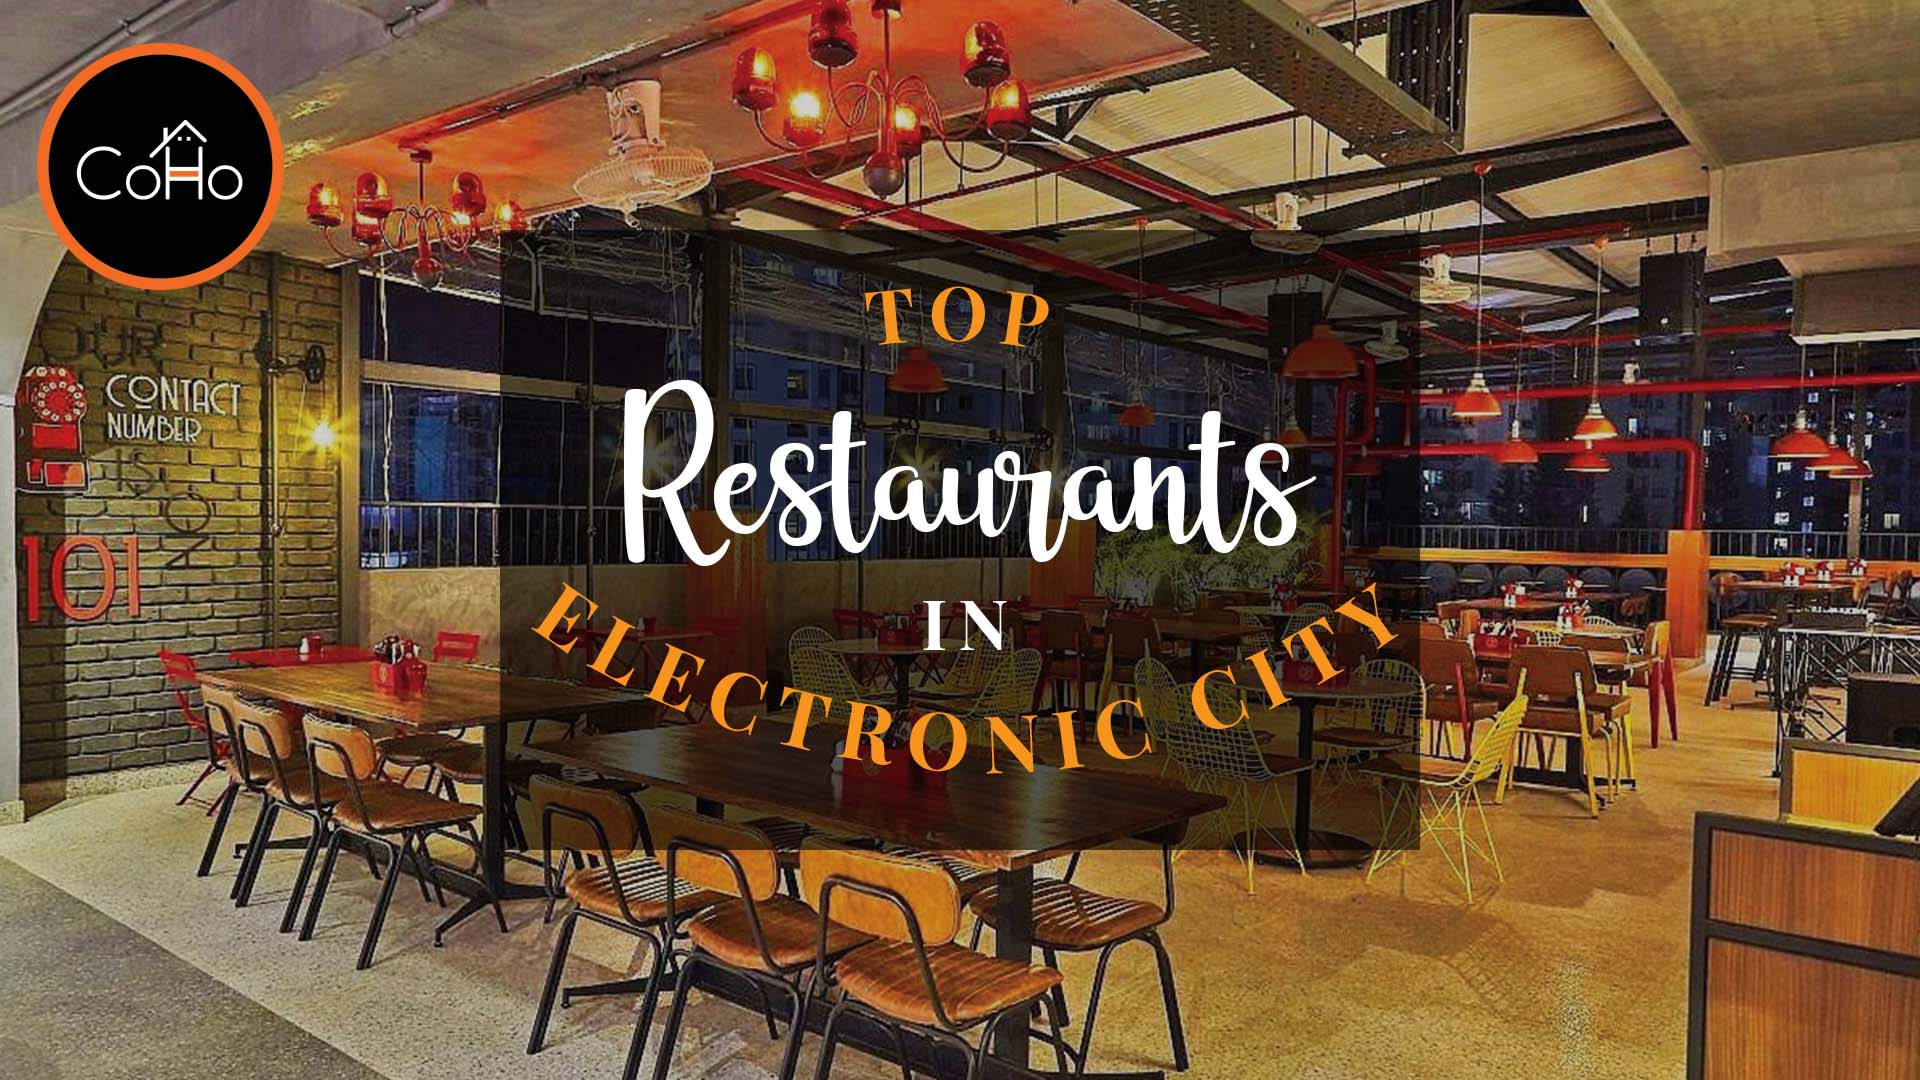 Top restaurants in Electronic city Phase 1